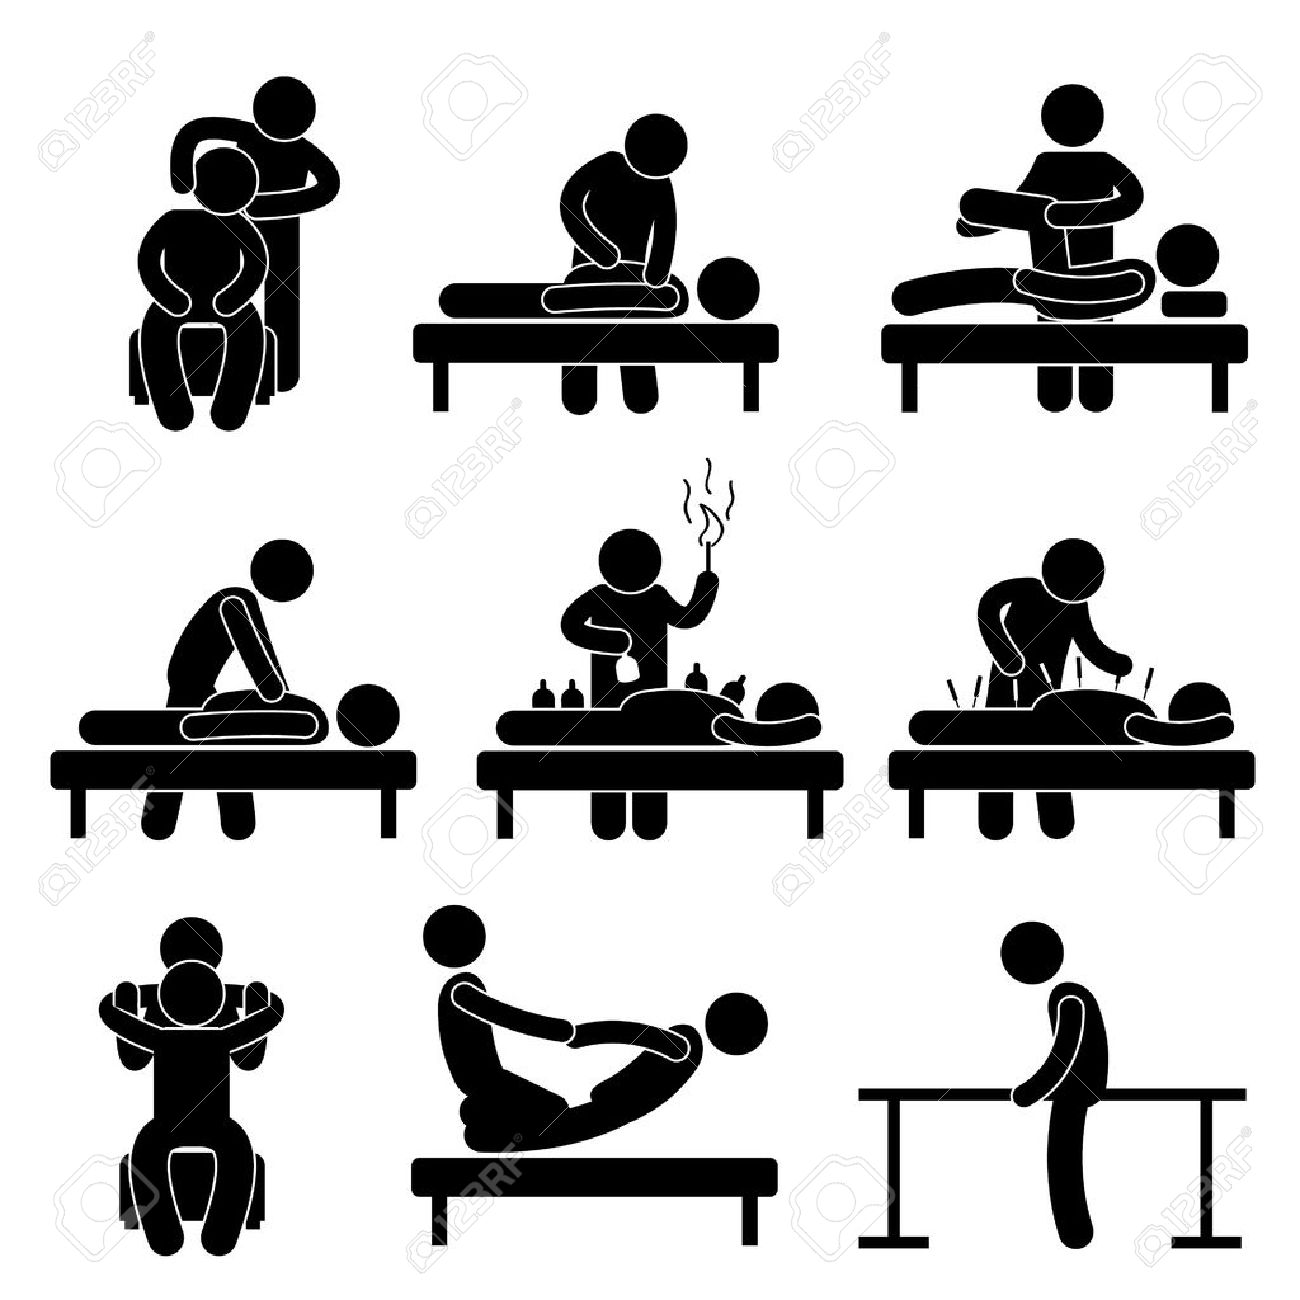 Chiropractic Physiotherapy Acupuncture Massage Rehabilitation Health Medical Treatment Icon Sign Symbol Pictogram Standard-Bild - 18797521